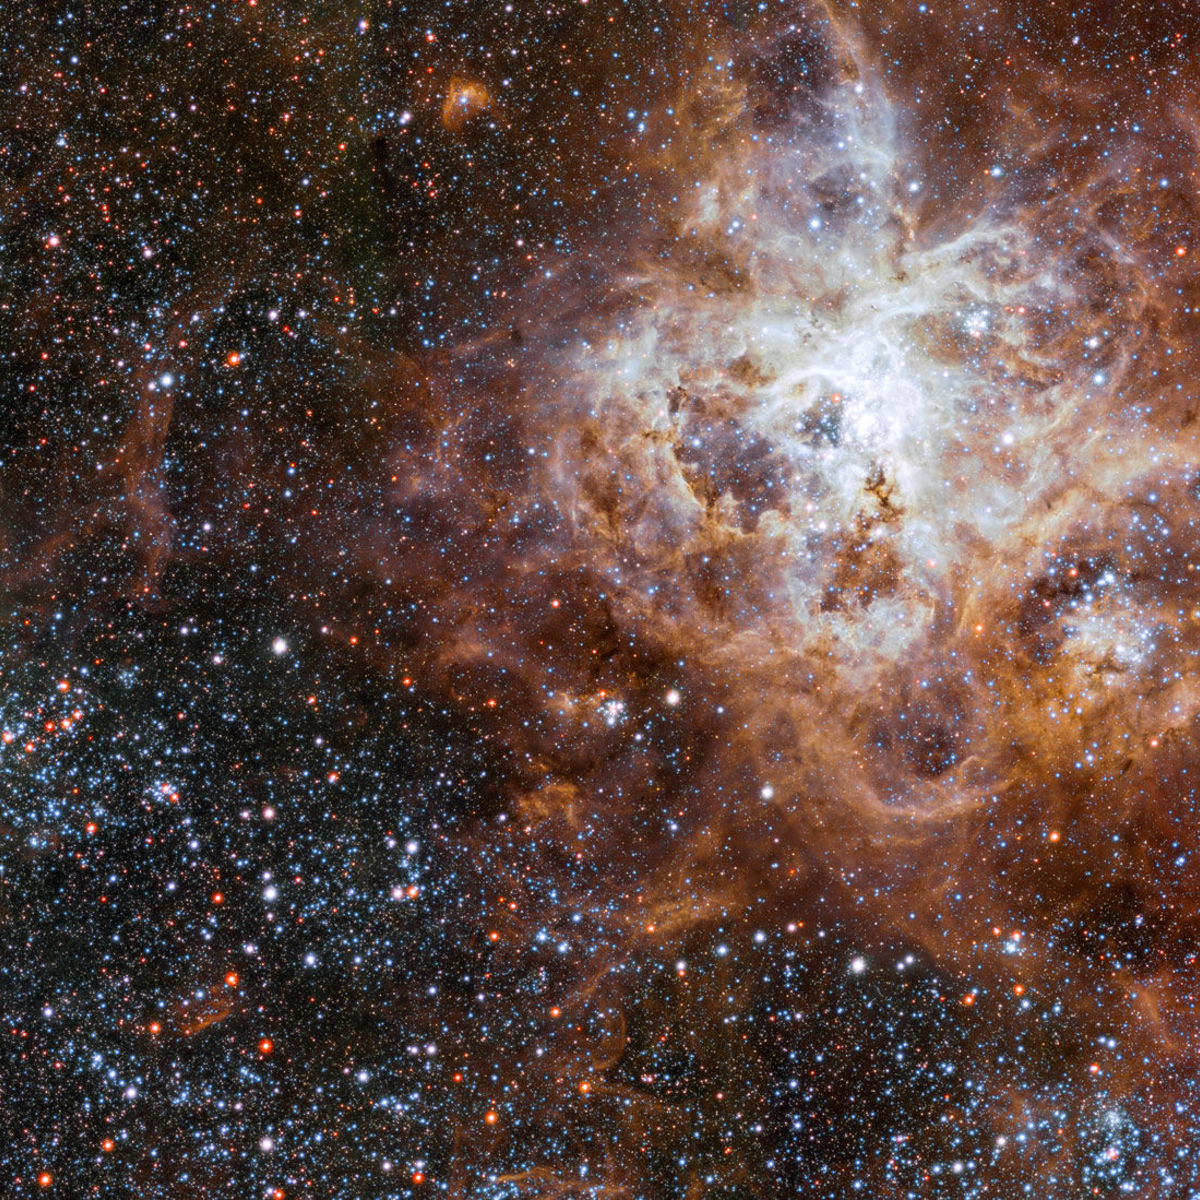 A small section of a huge image of the Tarantula Nebula, a sprawling star-forming gas cloud in a nearby galaxy. Credit: ESO